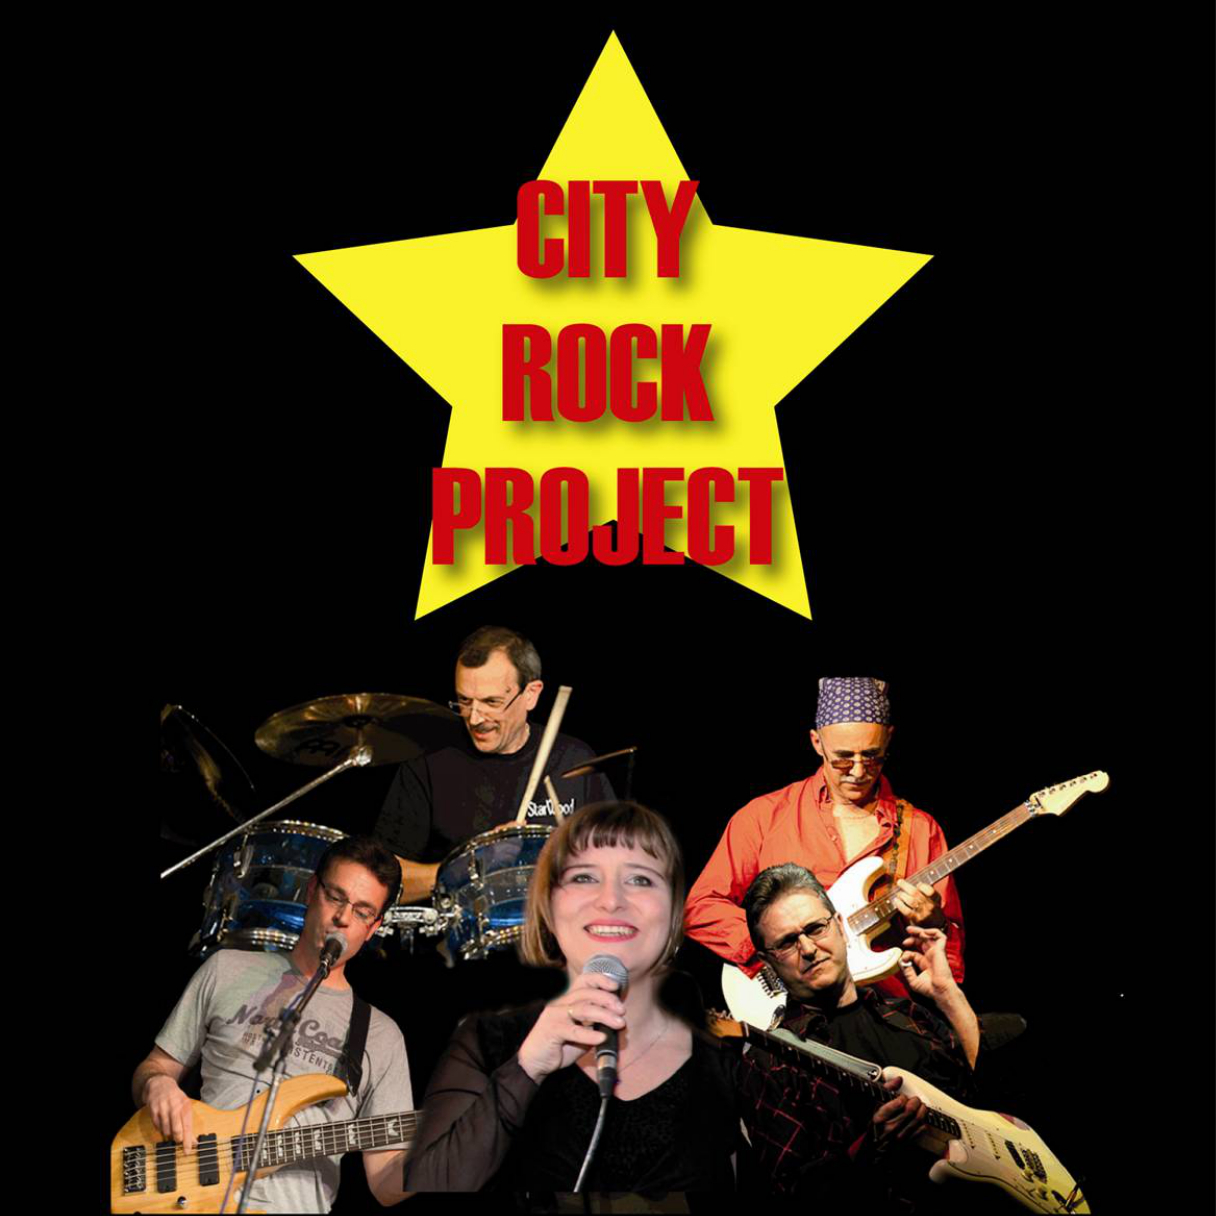 city rock project